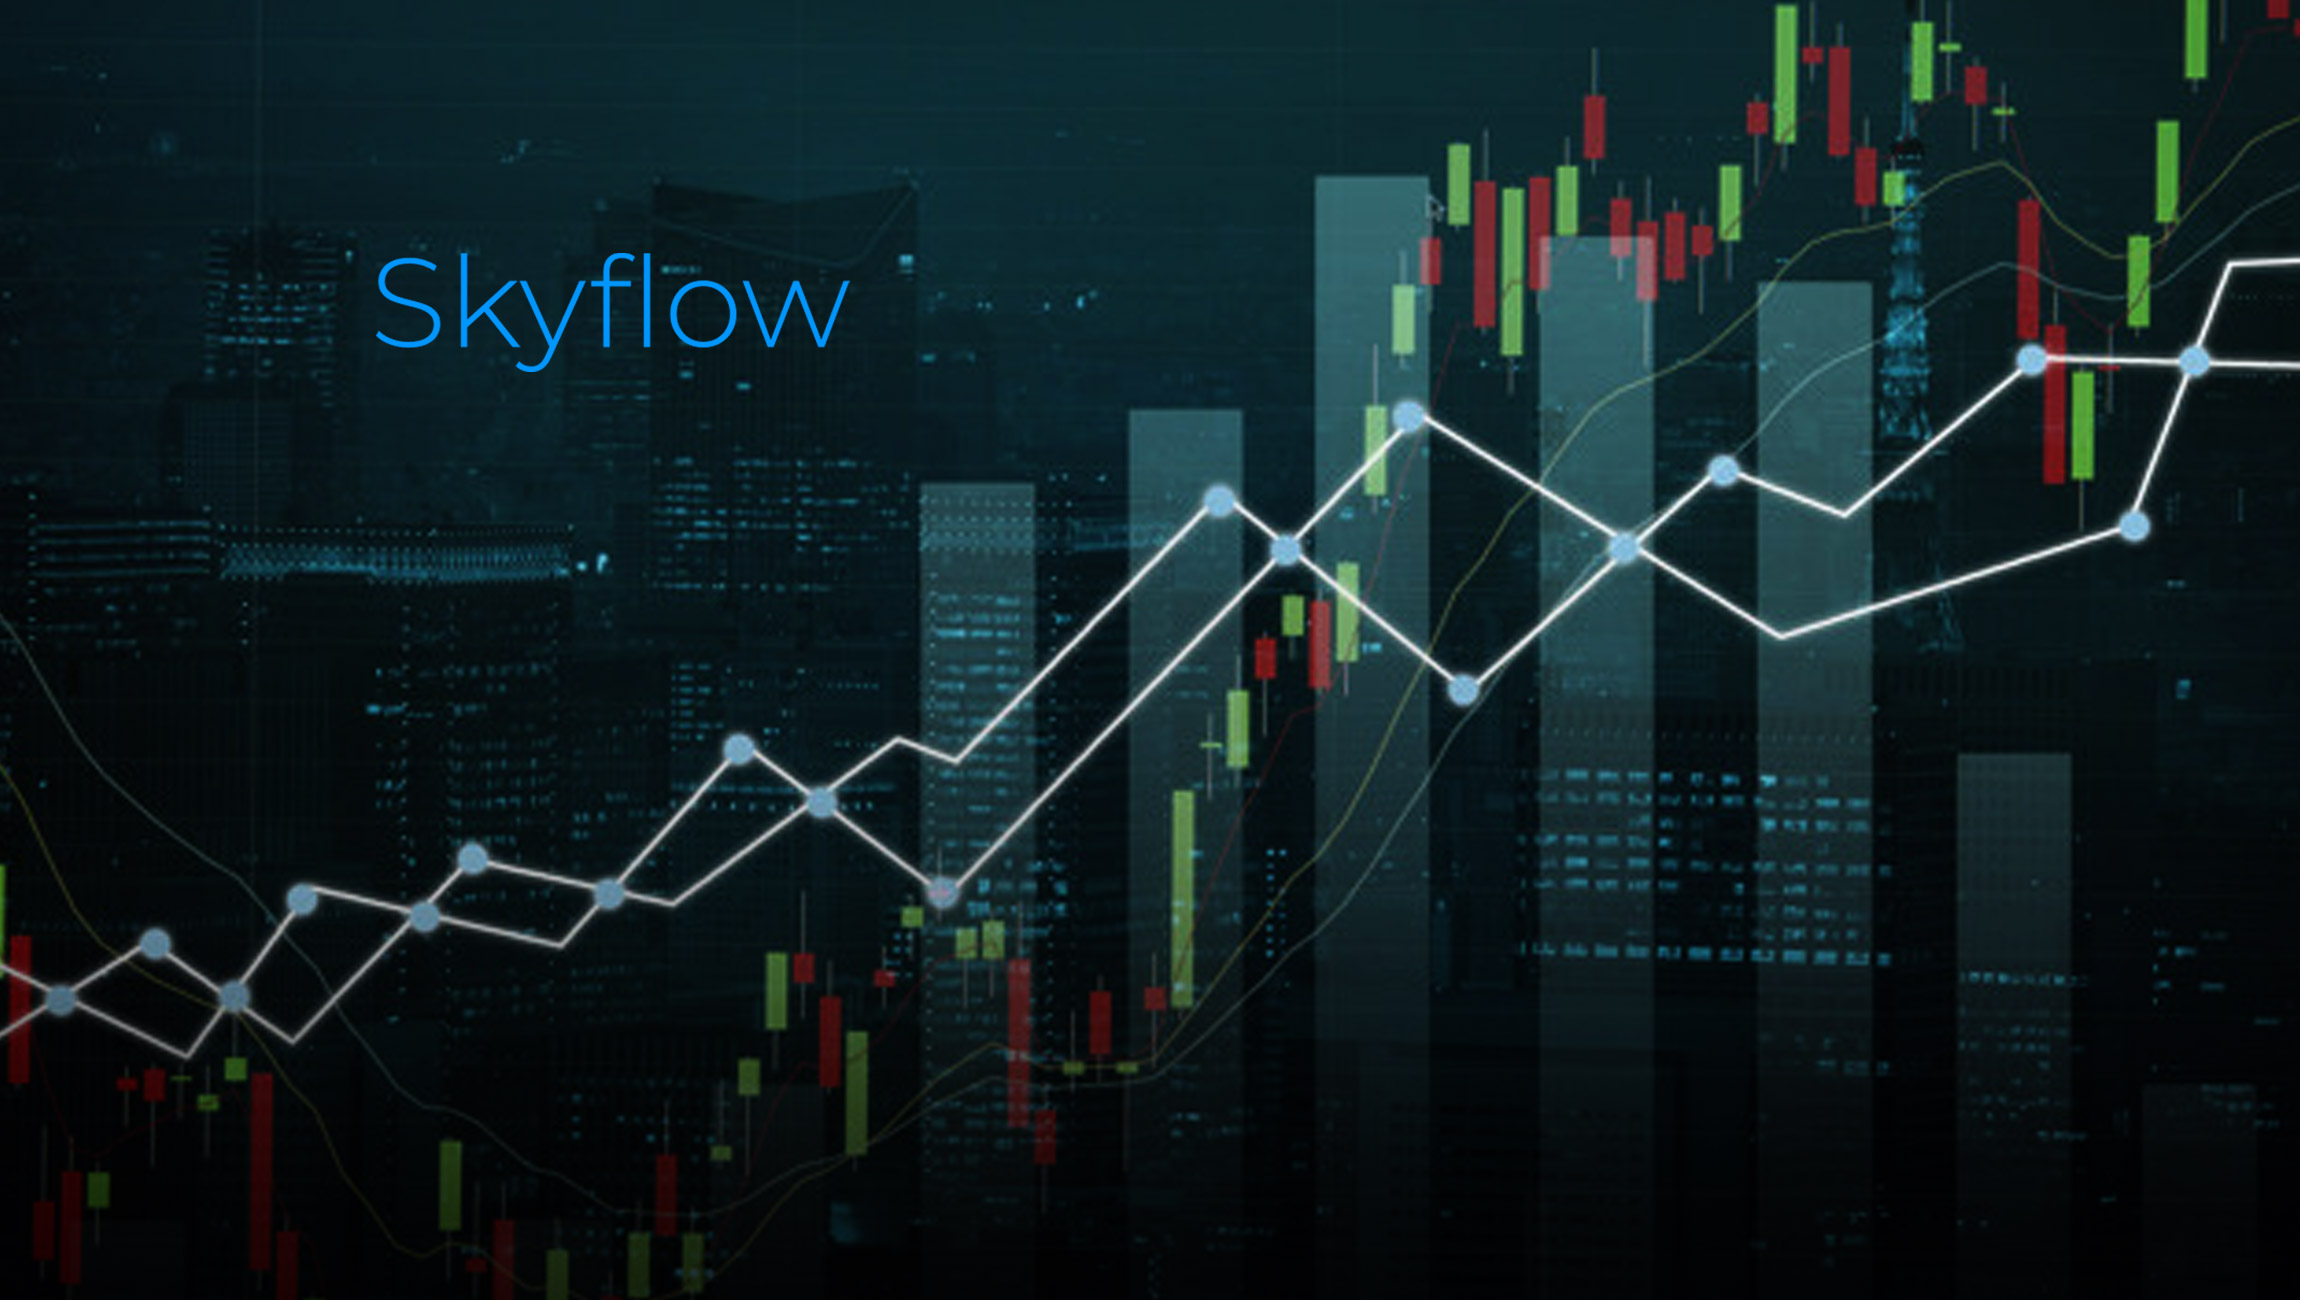 Skyflow Raises $7.5m Seed Round to Build an API for Privacy